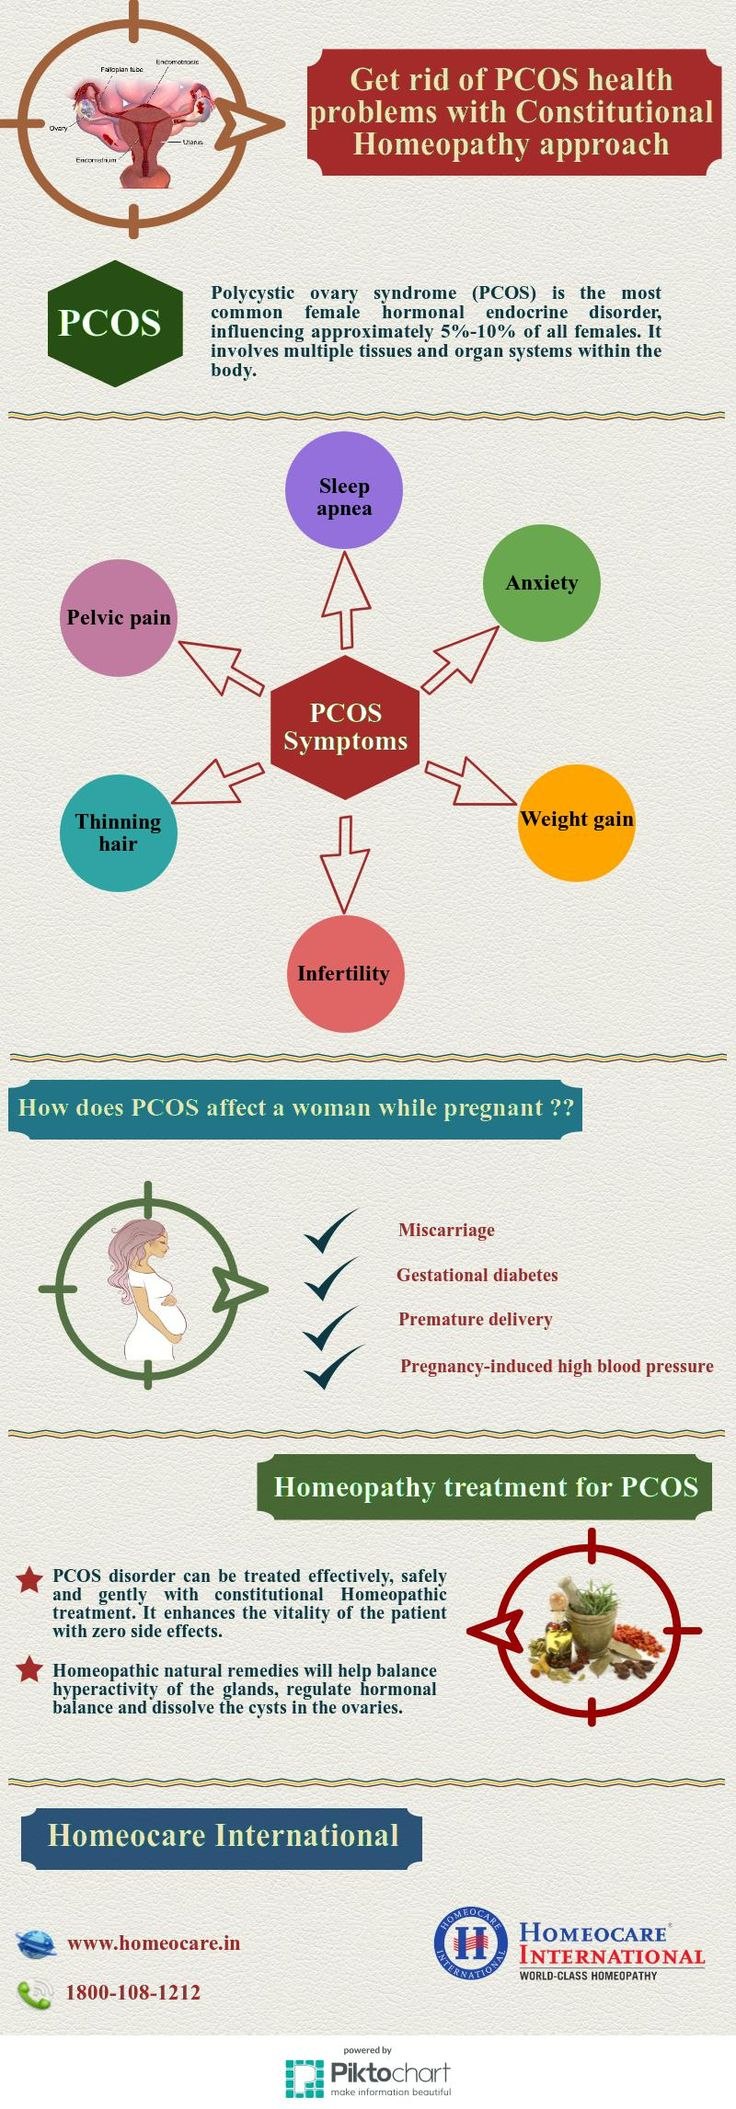 Polycystic Ovarian Syndrome also known as PCOS. It is the most common ovarian dysfunction and endocrine disorder portraying multiple cysts in the ovaries. It can be treated and diagnosed through natural Homeopathy at Homeocare International. Homeopathic remedies can restore hormonal balance, normal ovulation and menstrual cycles from root level. Get a free consultation at Homeocare International and get rid of PCOS hormonal problems.